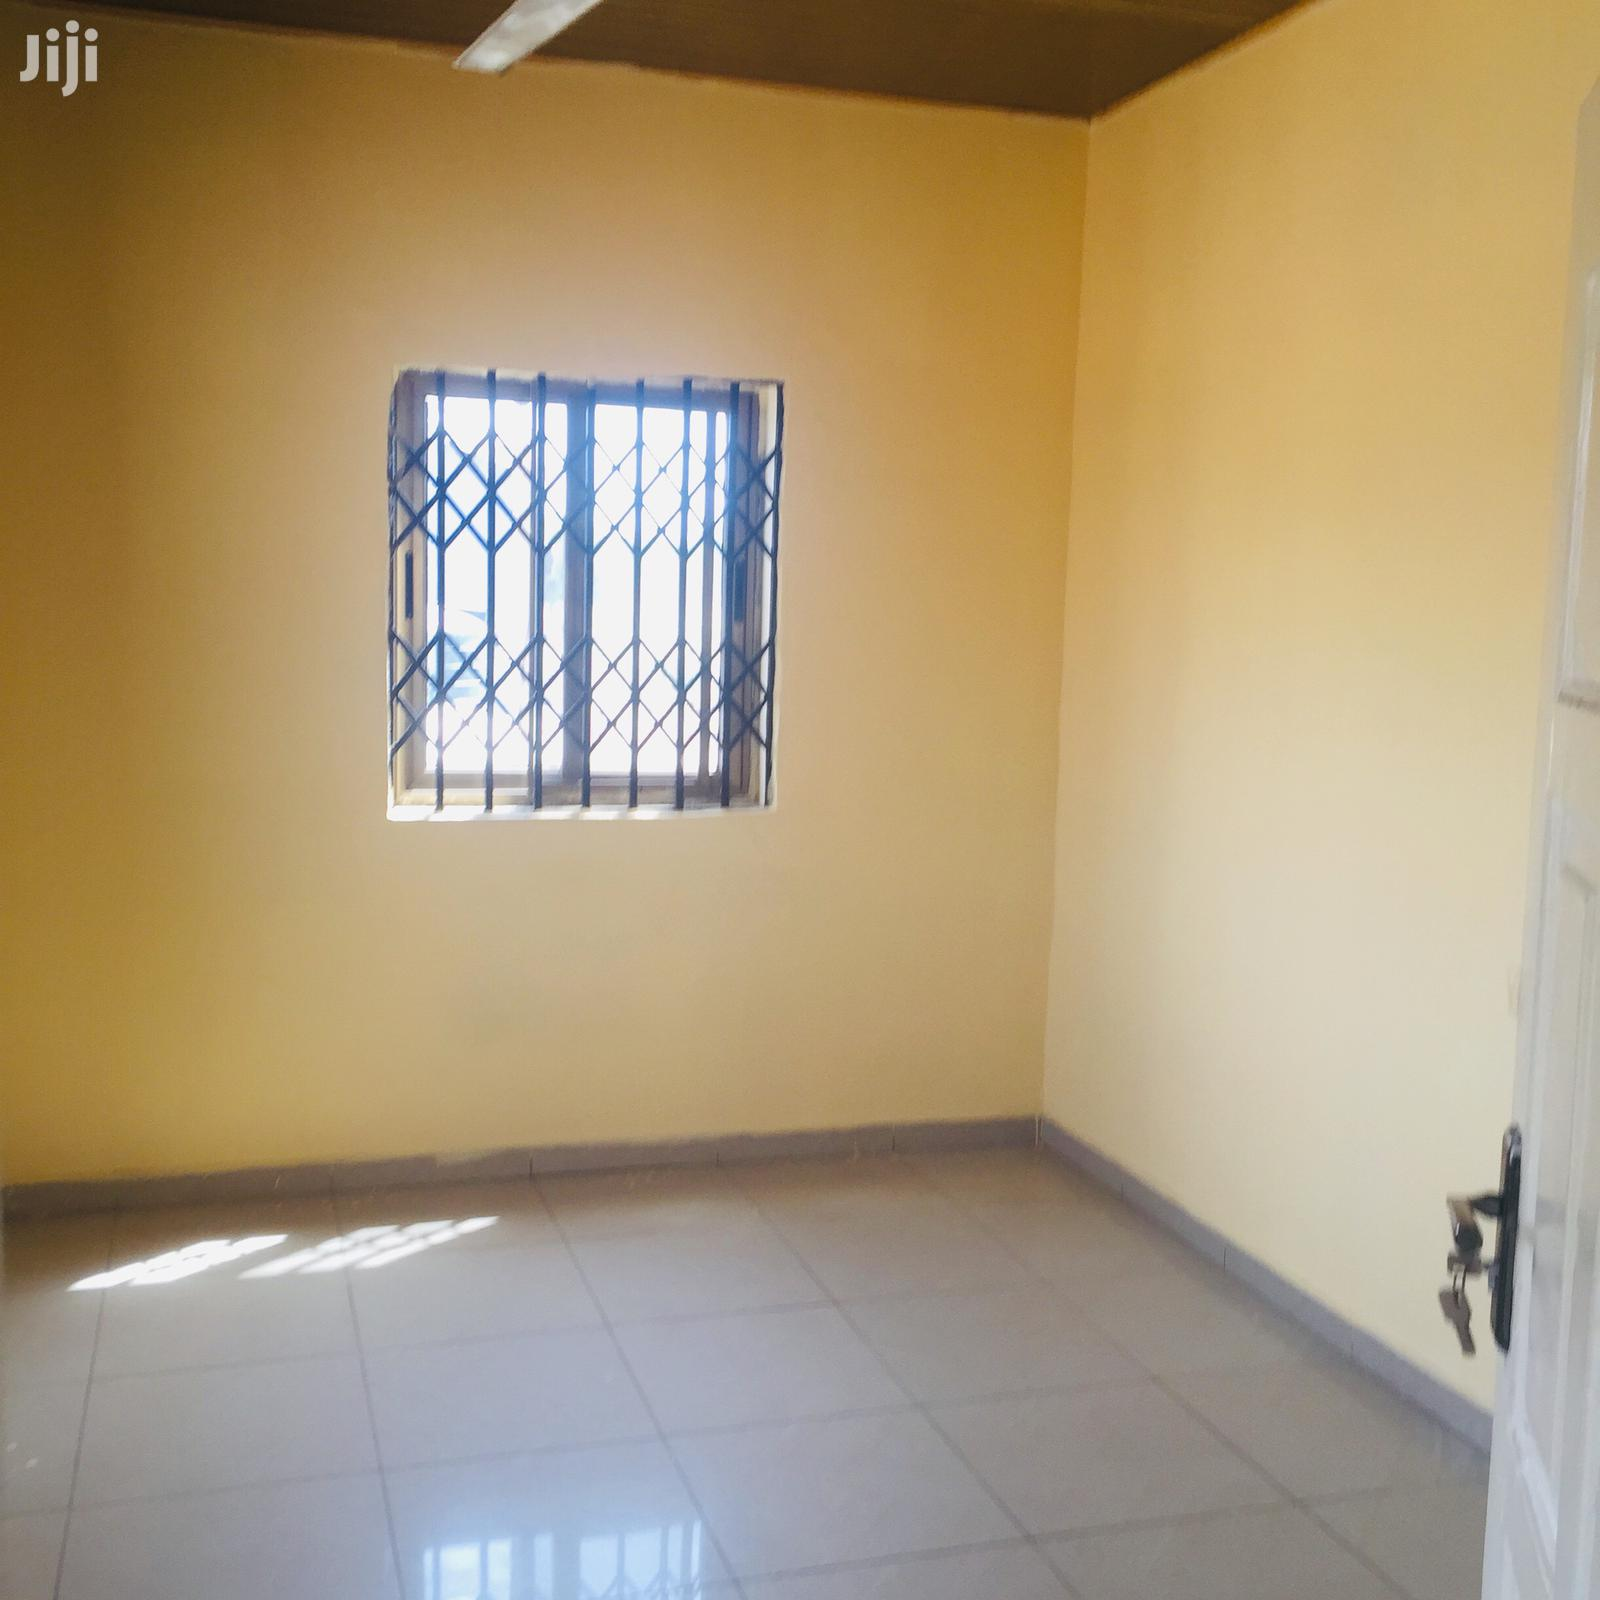 2bedrooms Apartment For Rent At Bush Road For A Year Advance | Houses & Apartments For Rent for sale in La Wireless, Labadi, Ghana